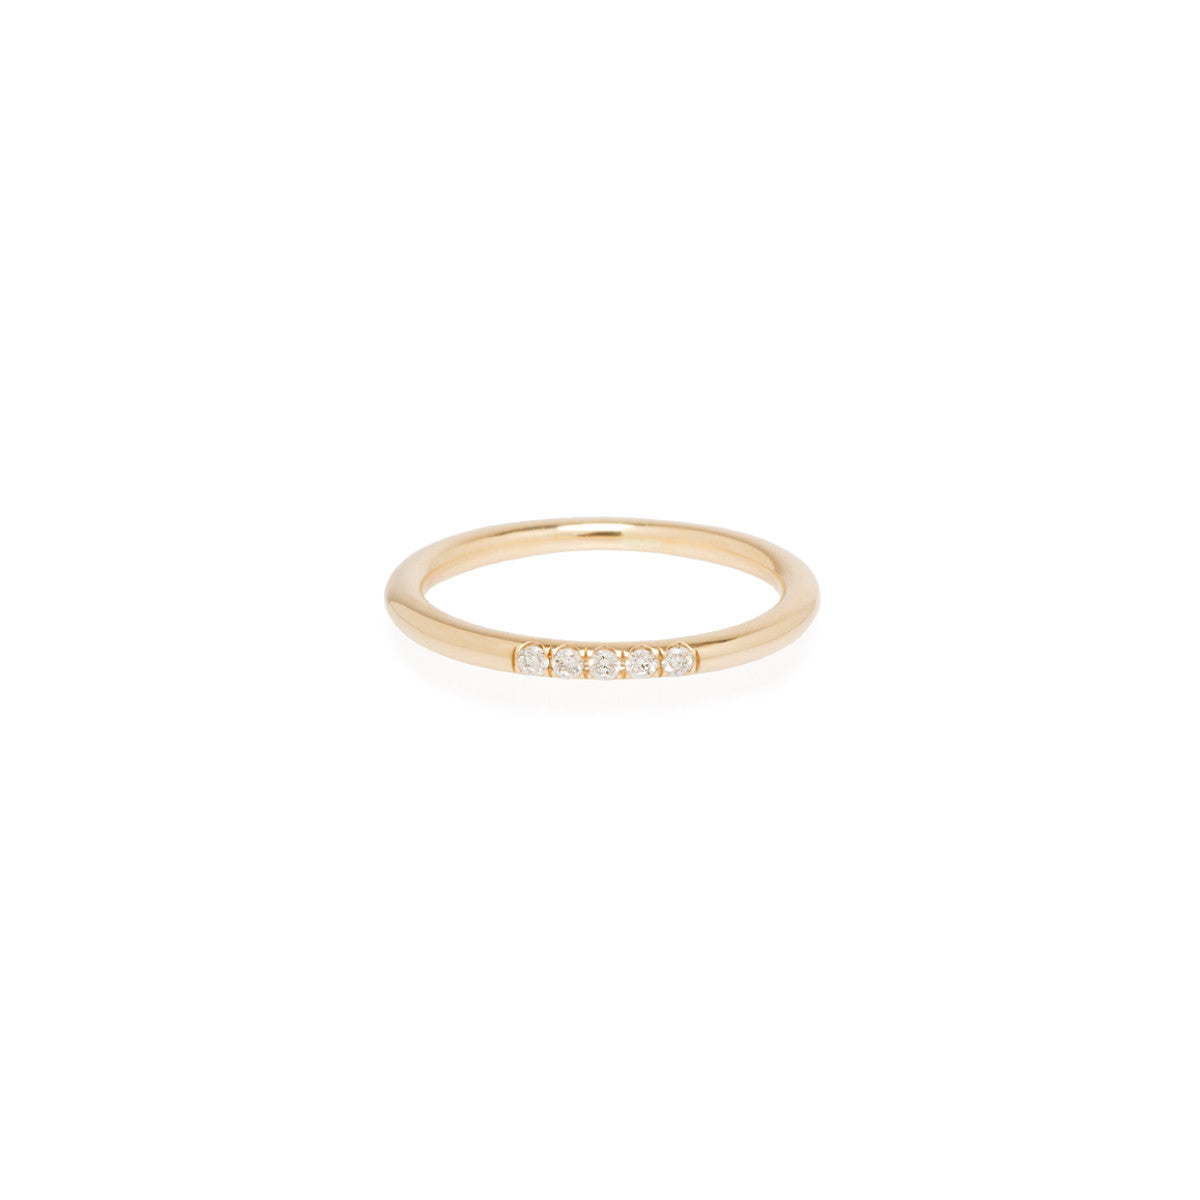 Zoë Chicco 14kt Yellow Gold 5 White Diamond Pave Band Ring